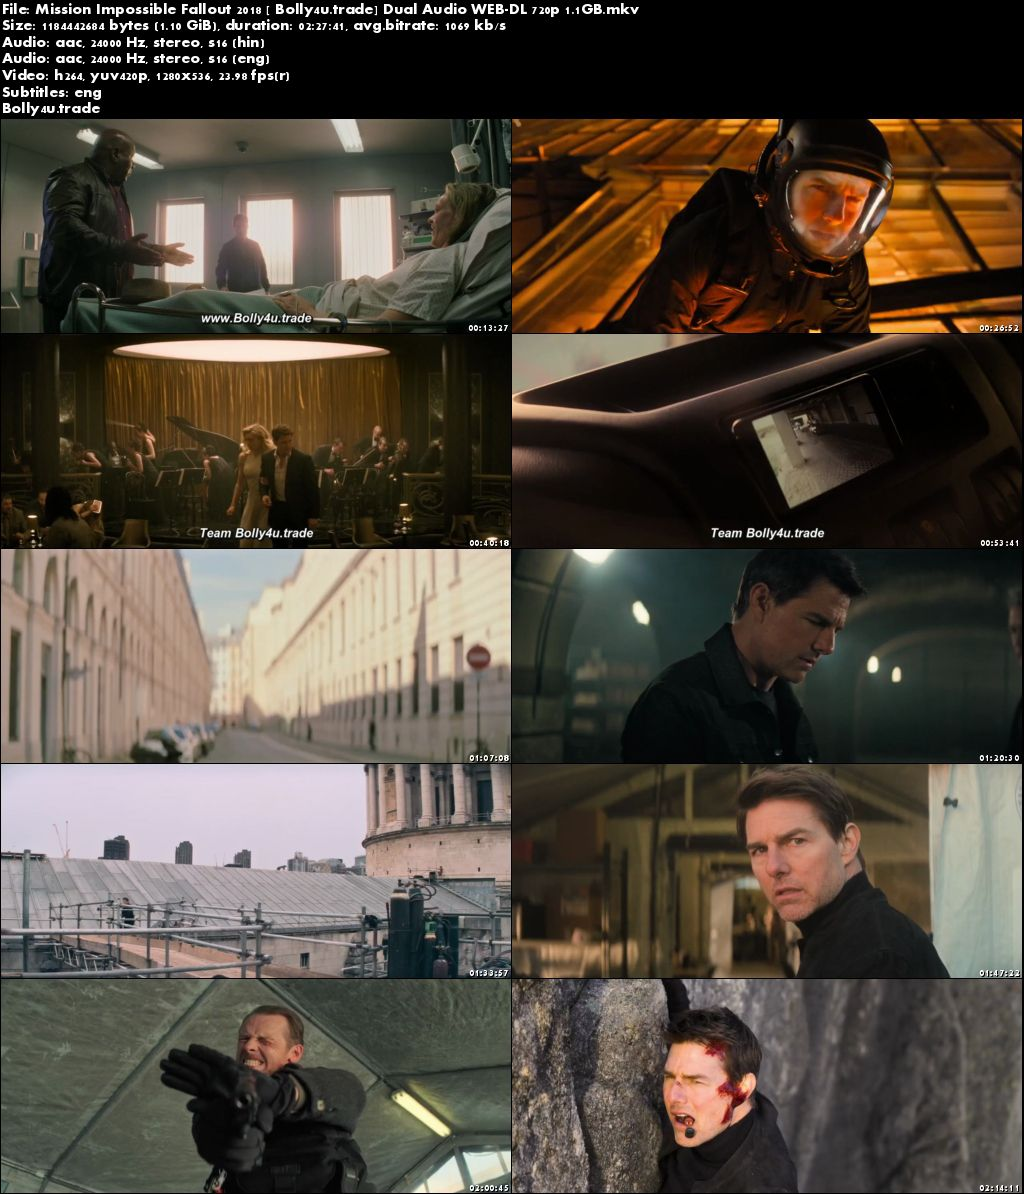 Mission Impossible Fallout 2018 WEB-DL Hindi Dual Audio 720p ESub Download